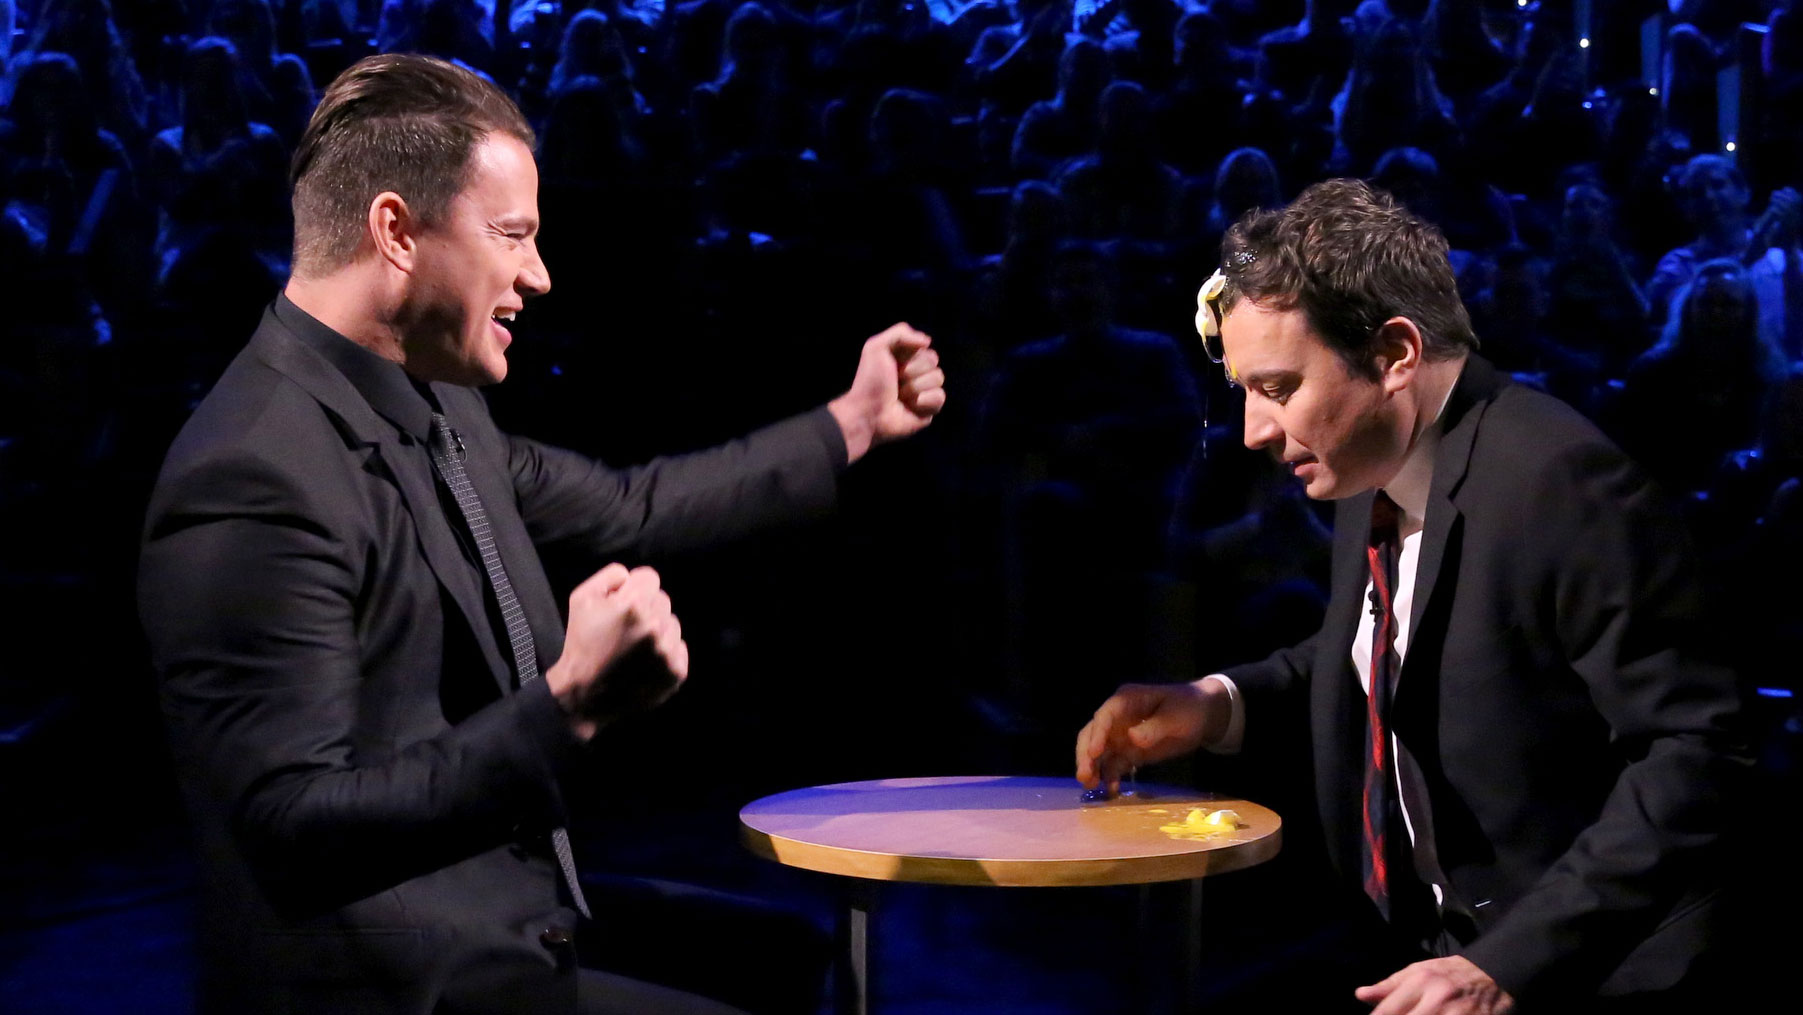 Egg Russian Roulette with Channing Tatum - The Tonight Show Channing Tatum